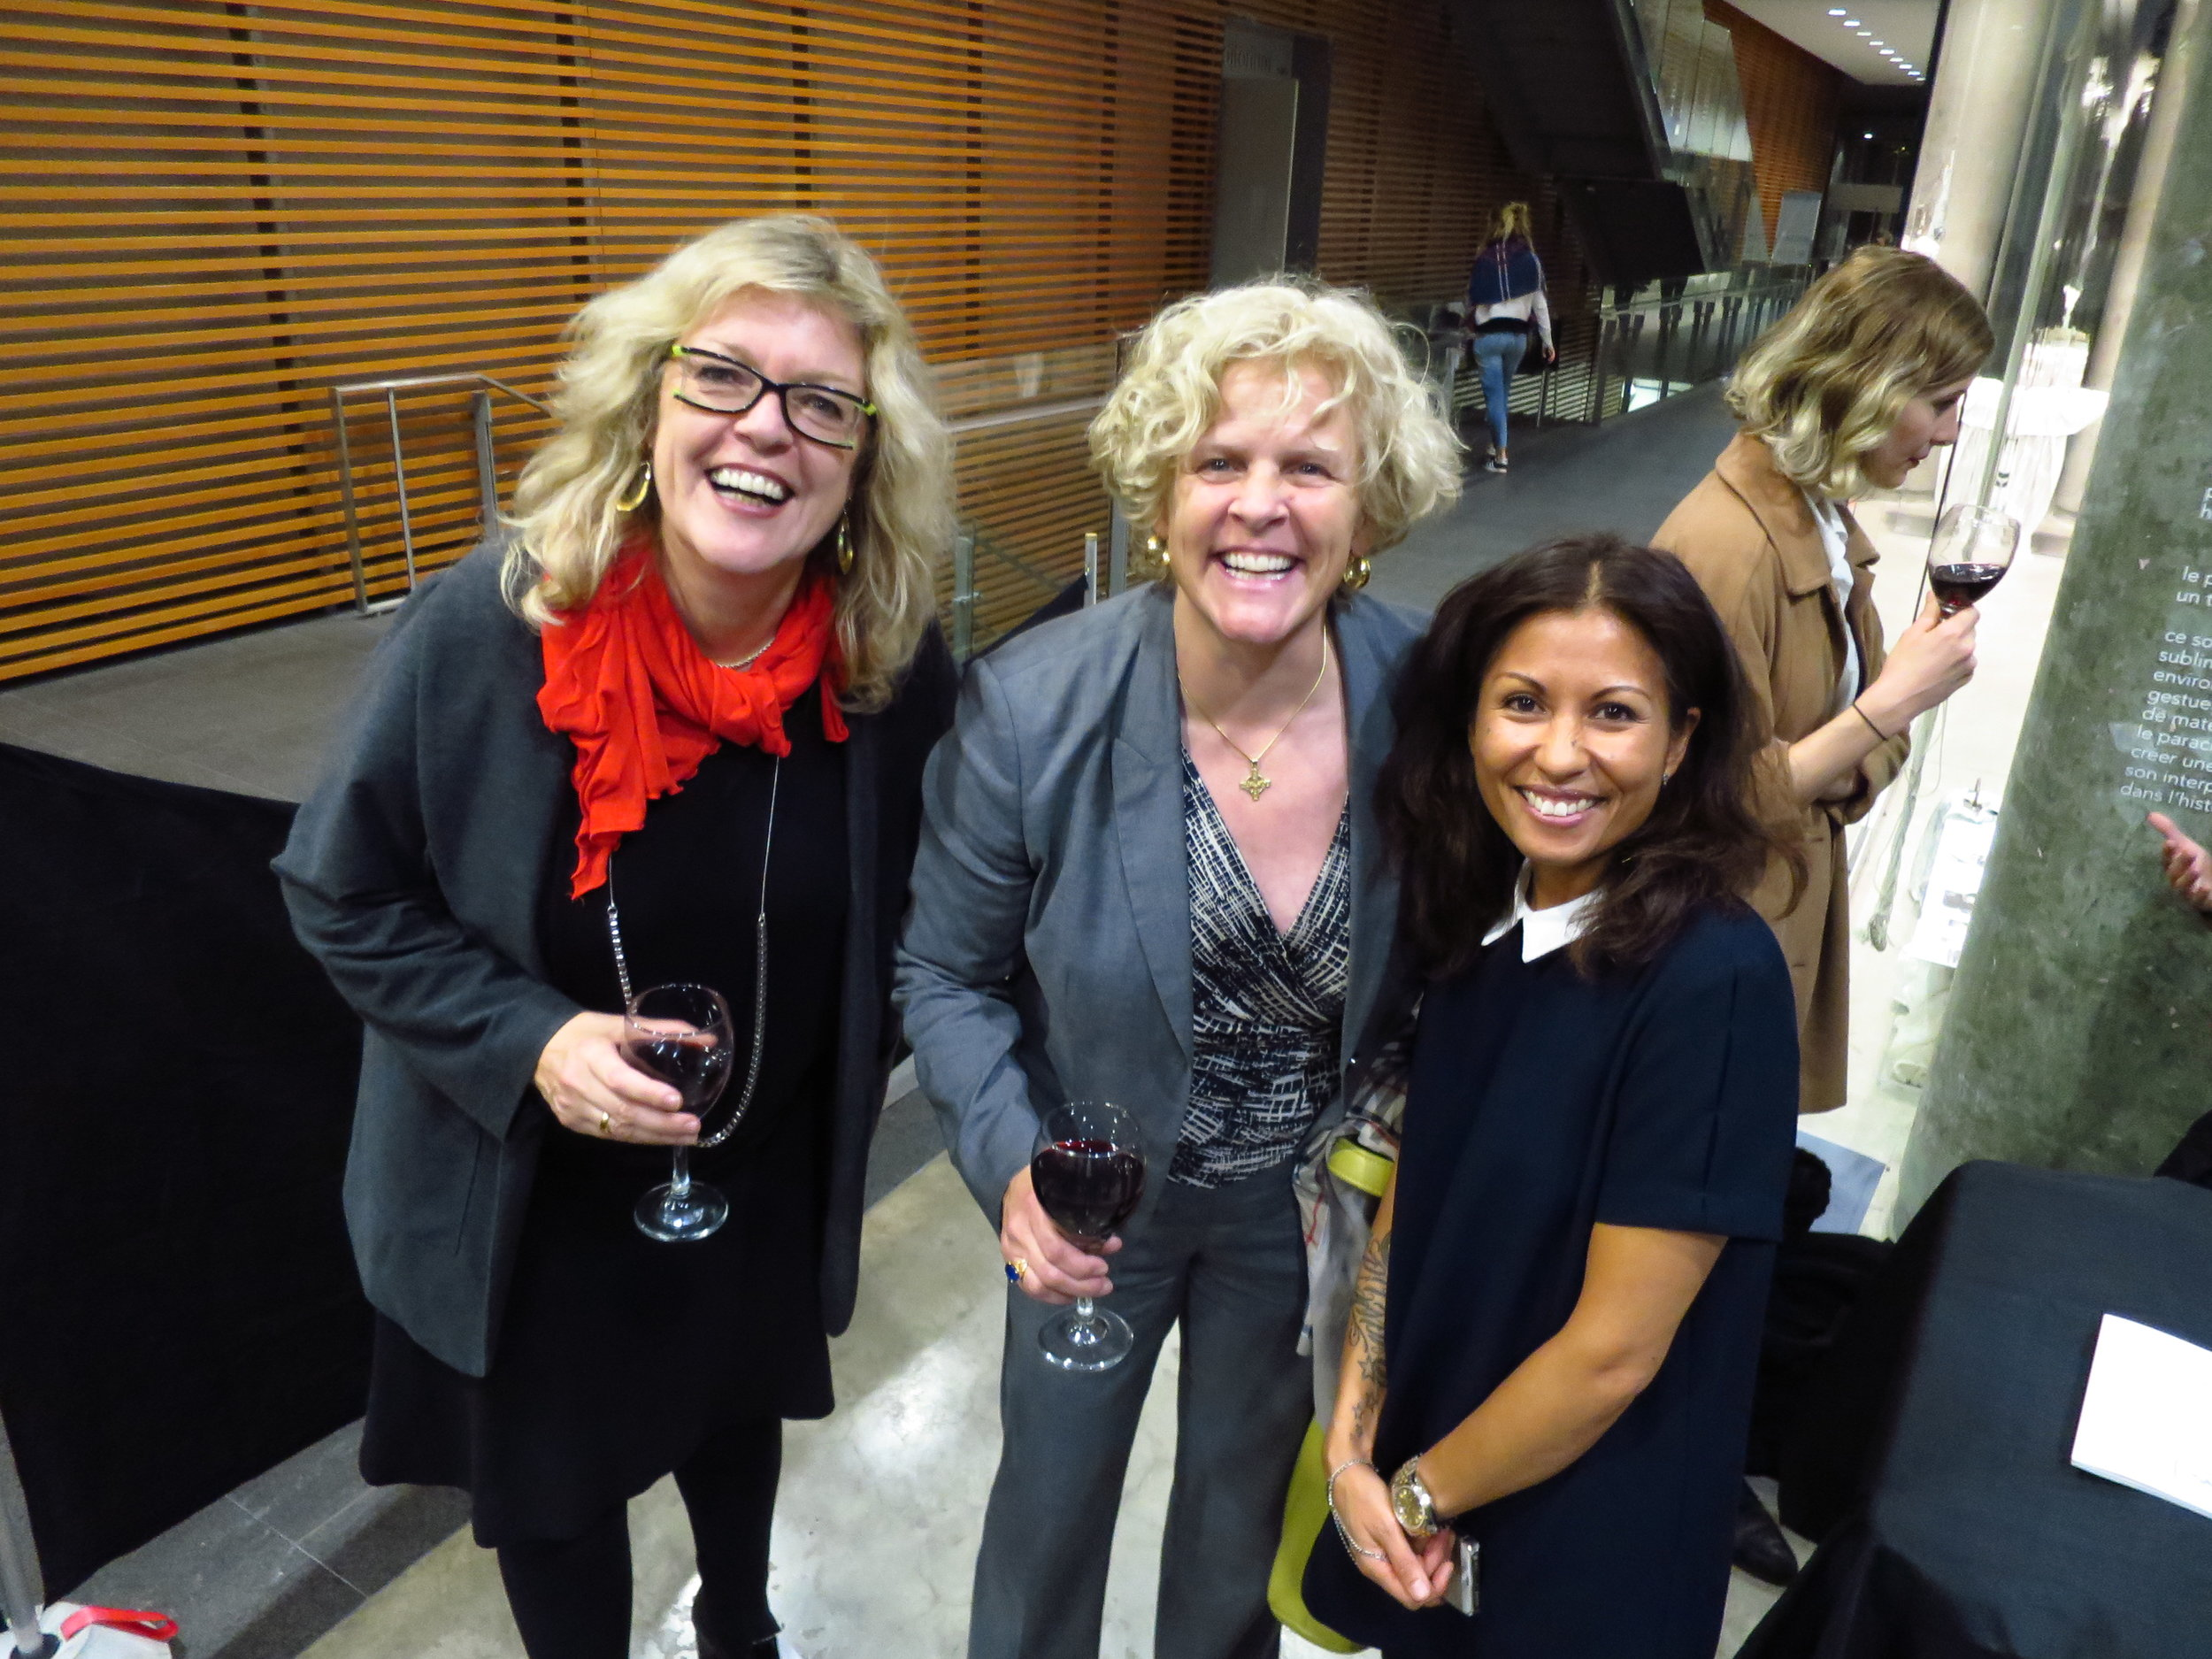 Ingrid Bacgmann, artist/principal investigator Hybrid Bodies, Heather Ross, Chief of Cardiology, Munk Cardiac Centre, UHN, Toronto, and Cheryl Sim   , Curator, DHC/ART Foundation for Contemporary Art, Montreal